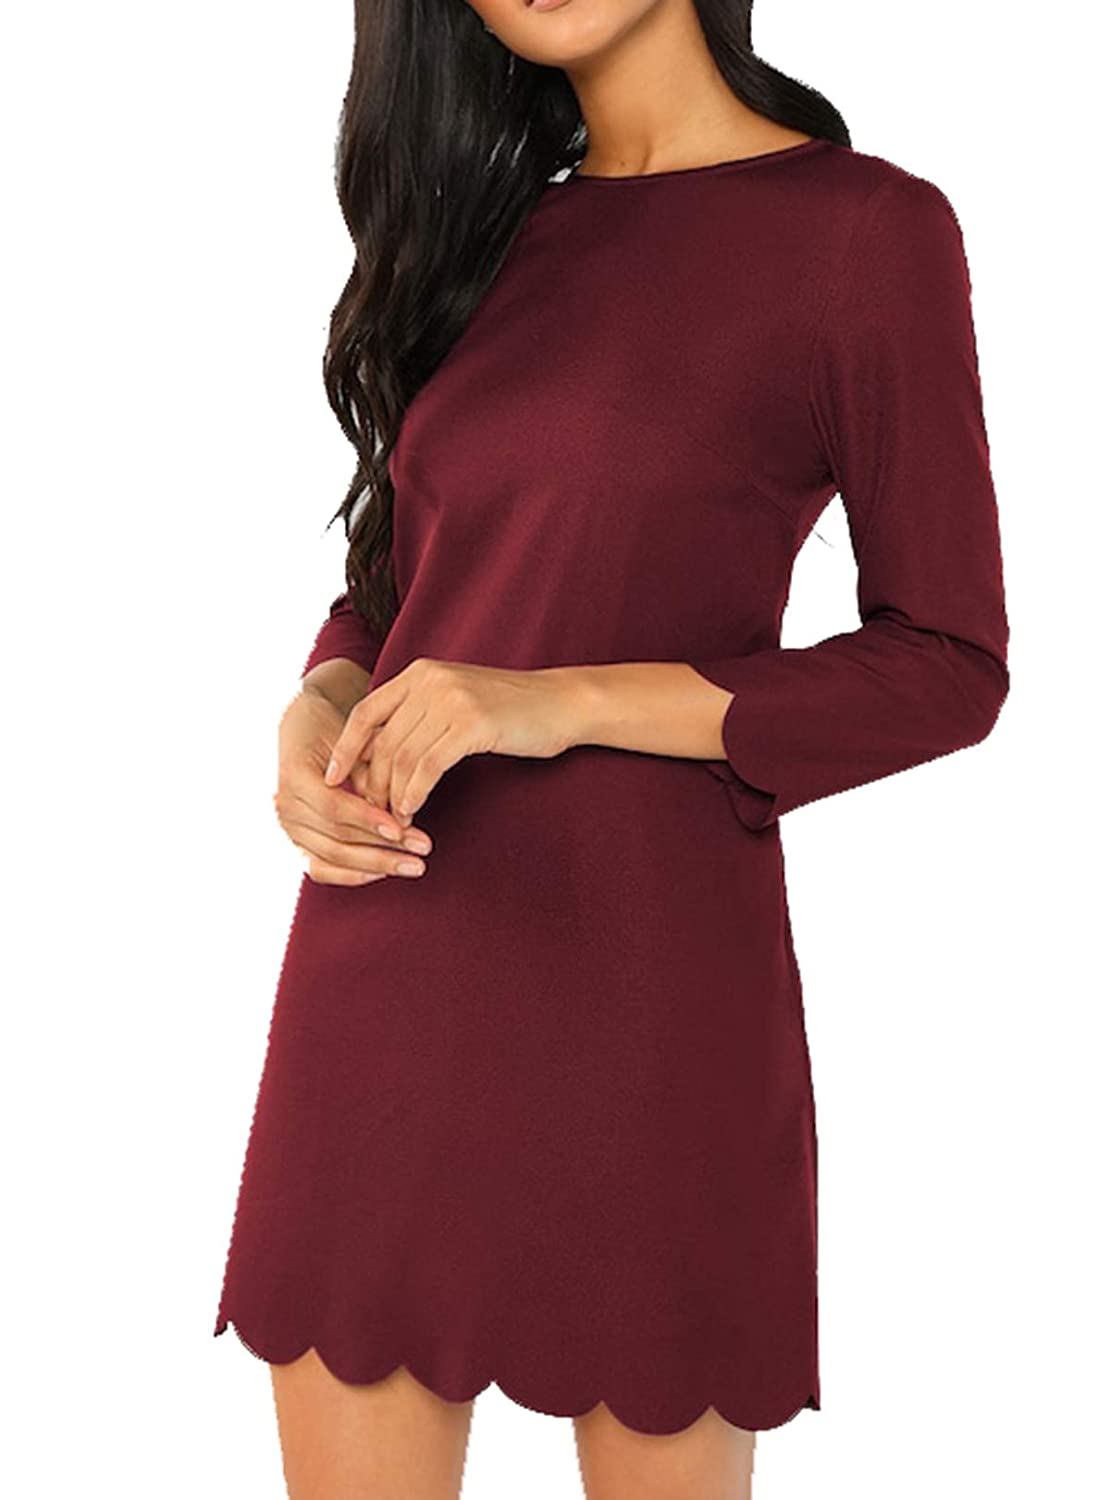 Burgundy Milumia Women's Casual 3 4 Sleeves Round Neck Solid Scallop Tunic Dress